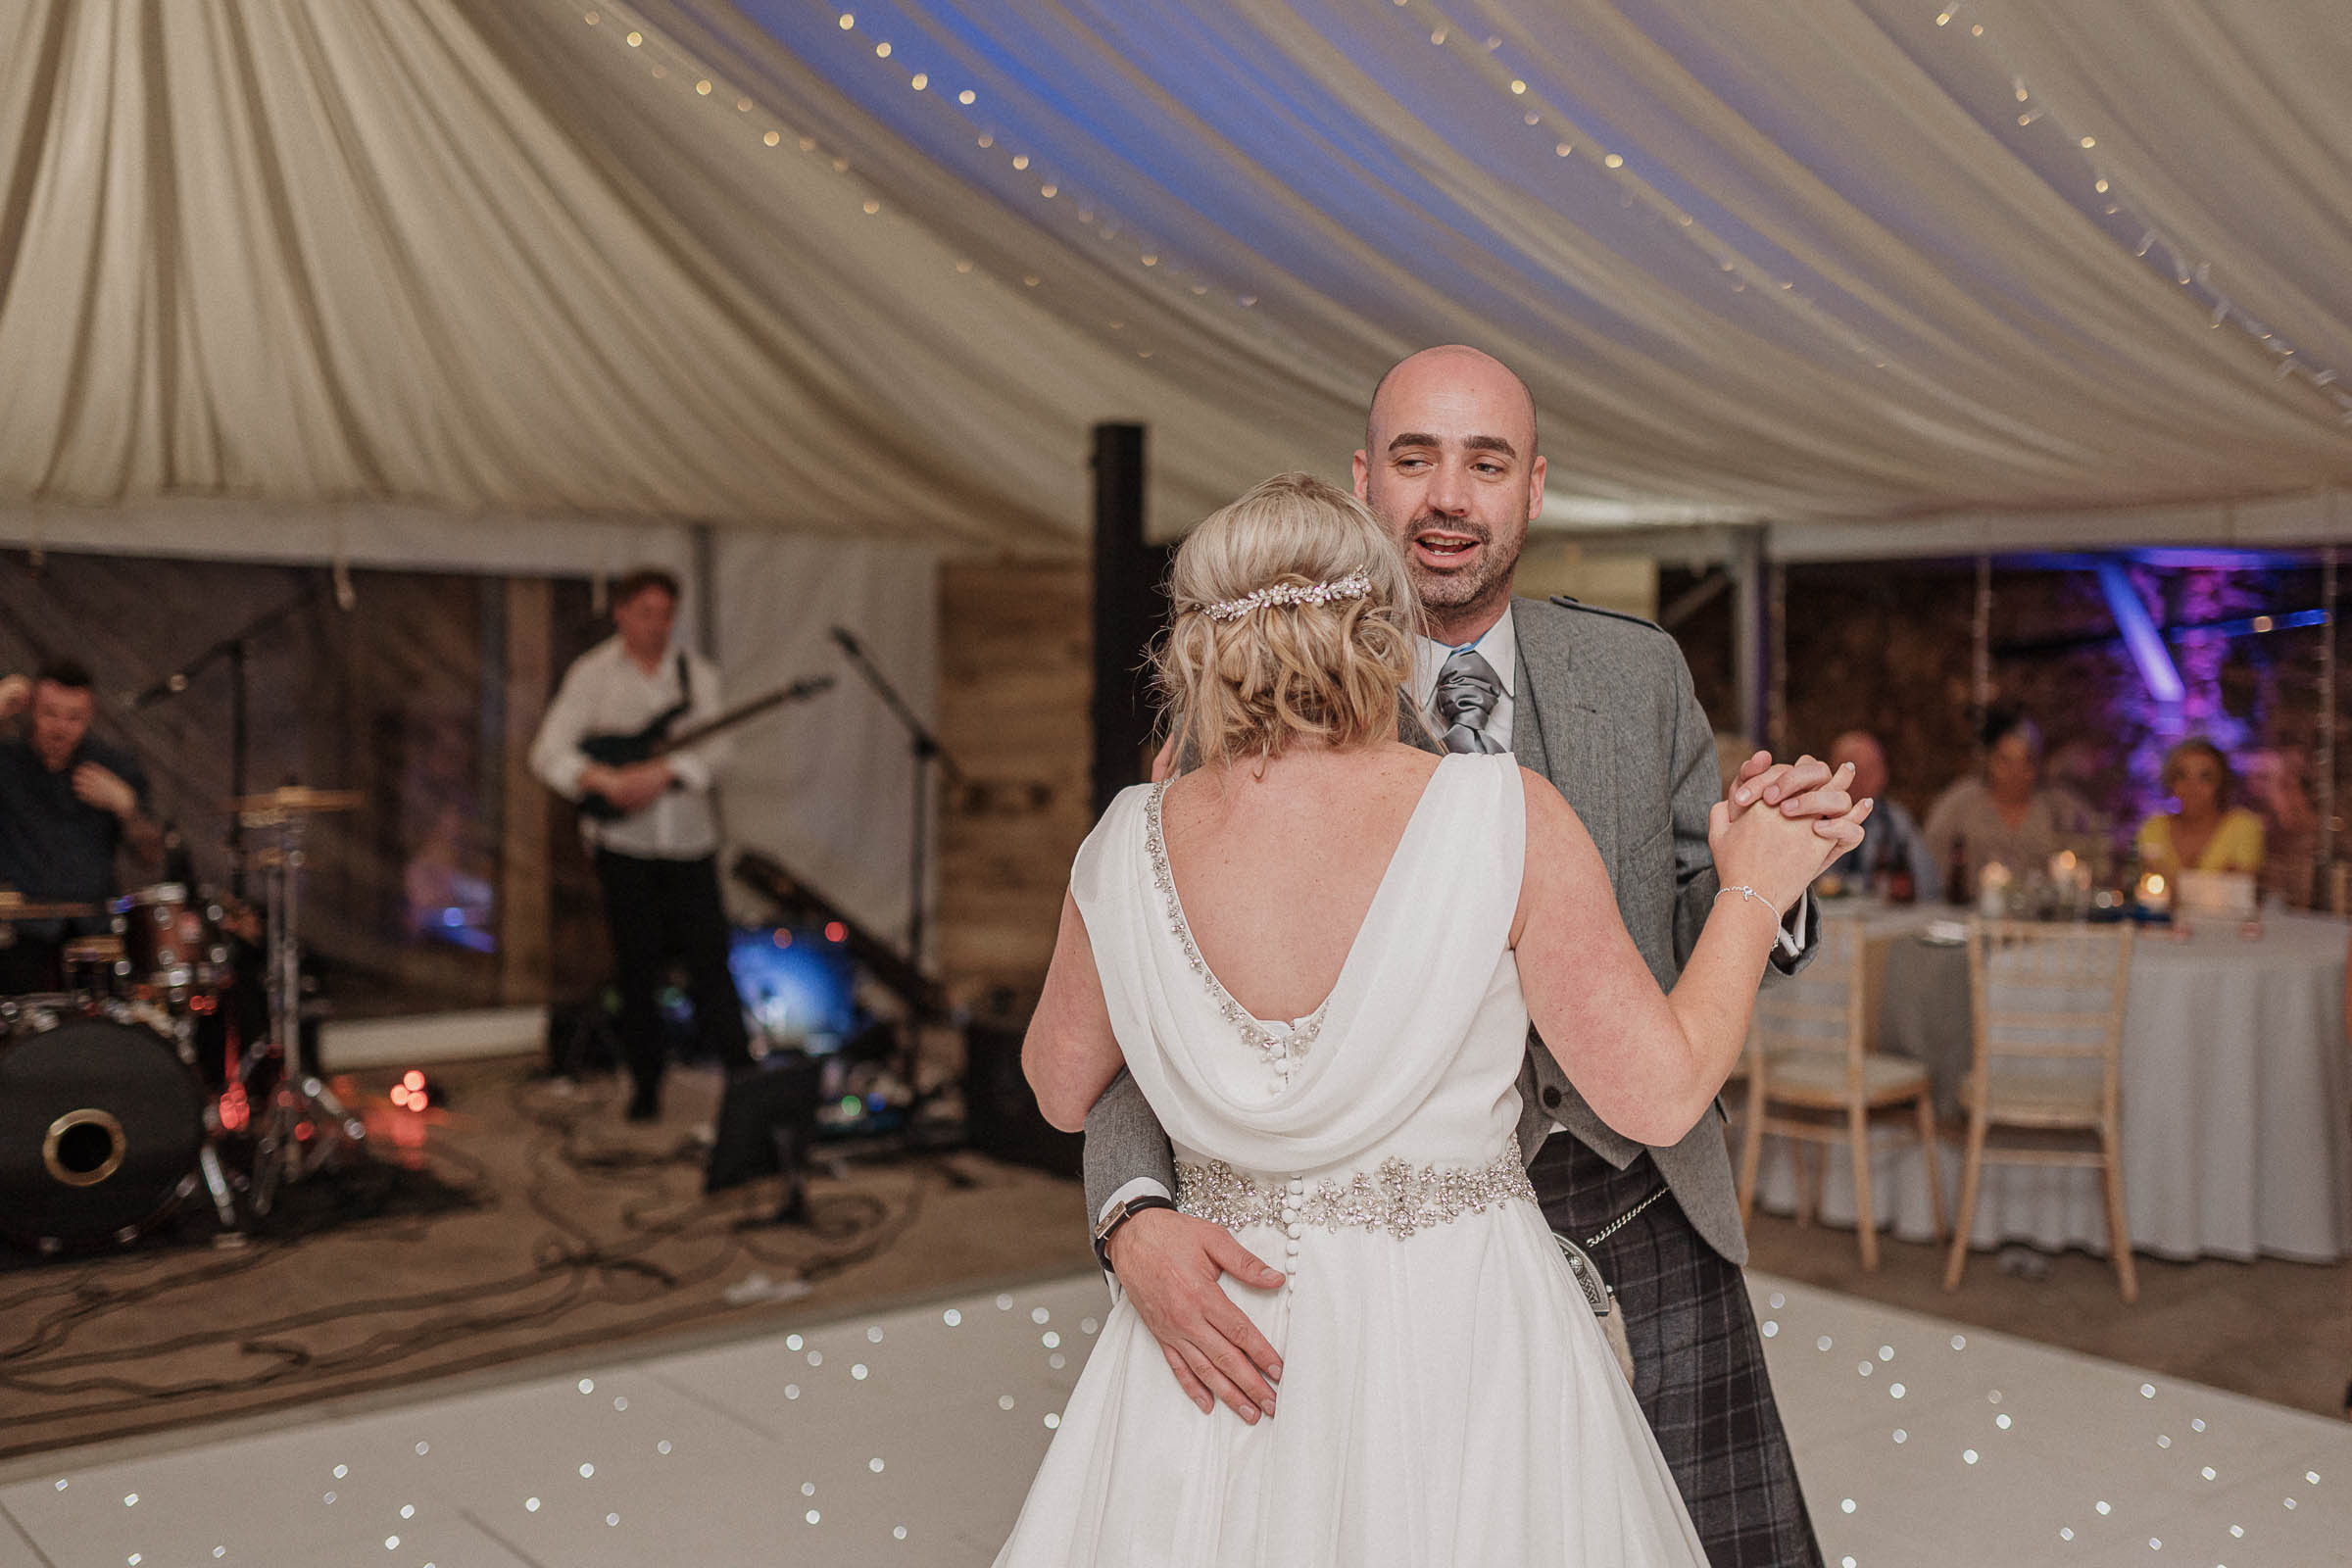 cowshed-crail-wedding-dearlyphotography (25 of 26).jpg